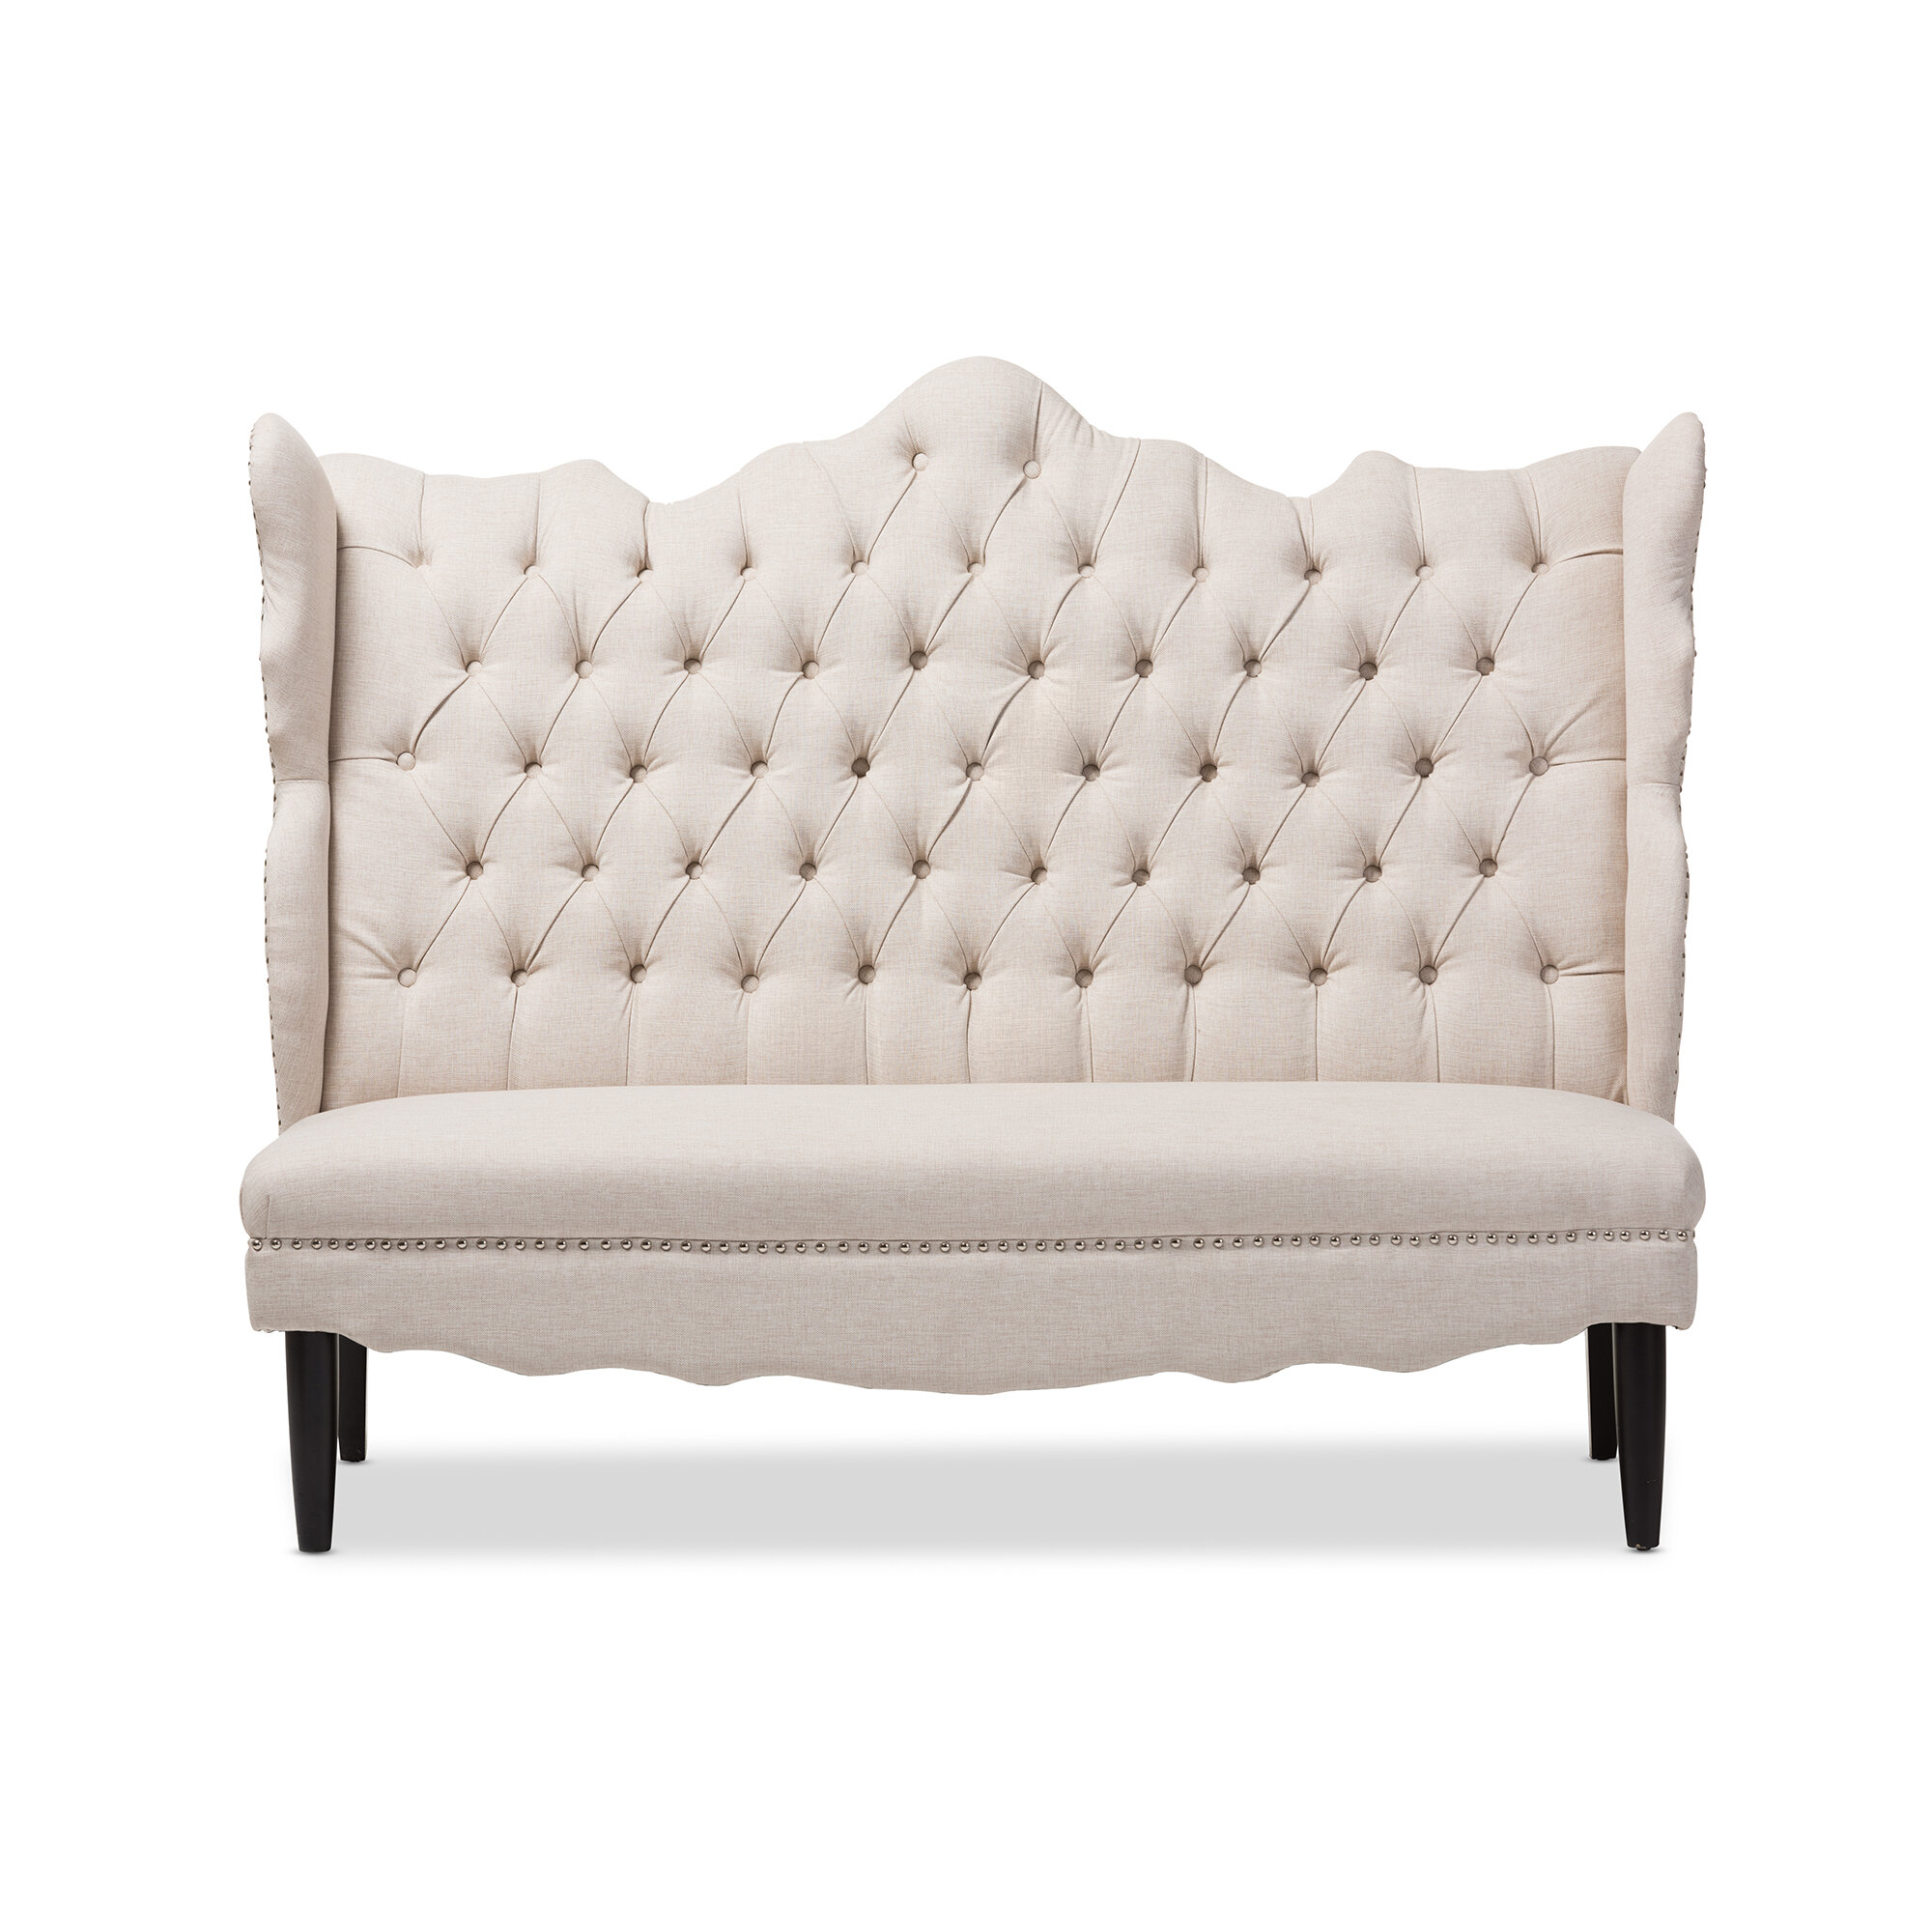 sea trunk size upholstered leather white small velvet end king full set bedroom settee of breathtaking fabric chest yellow on uk storage modern with benches tufted seat bed shelf easton narrow entryway pics seats grey window bench